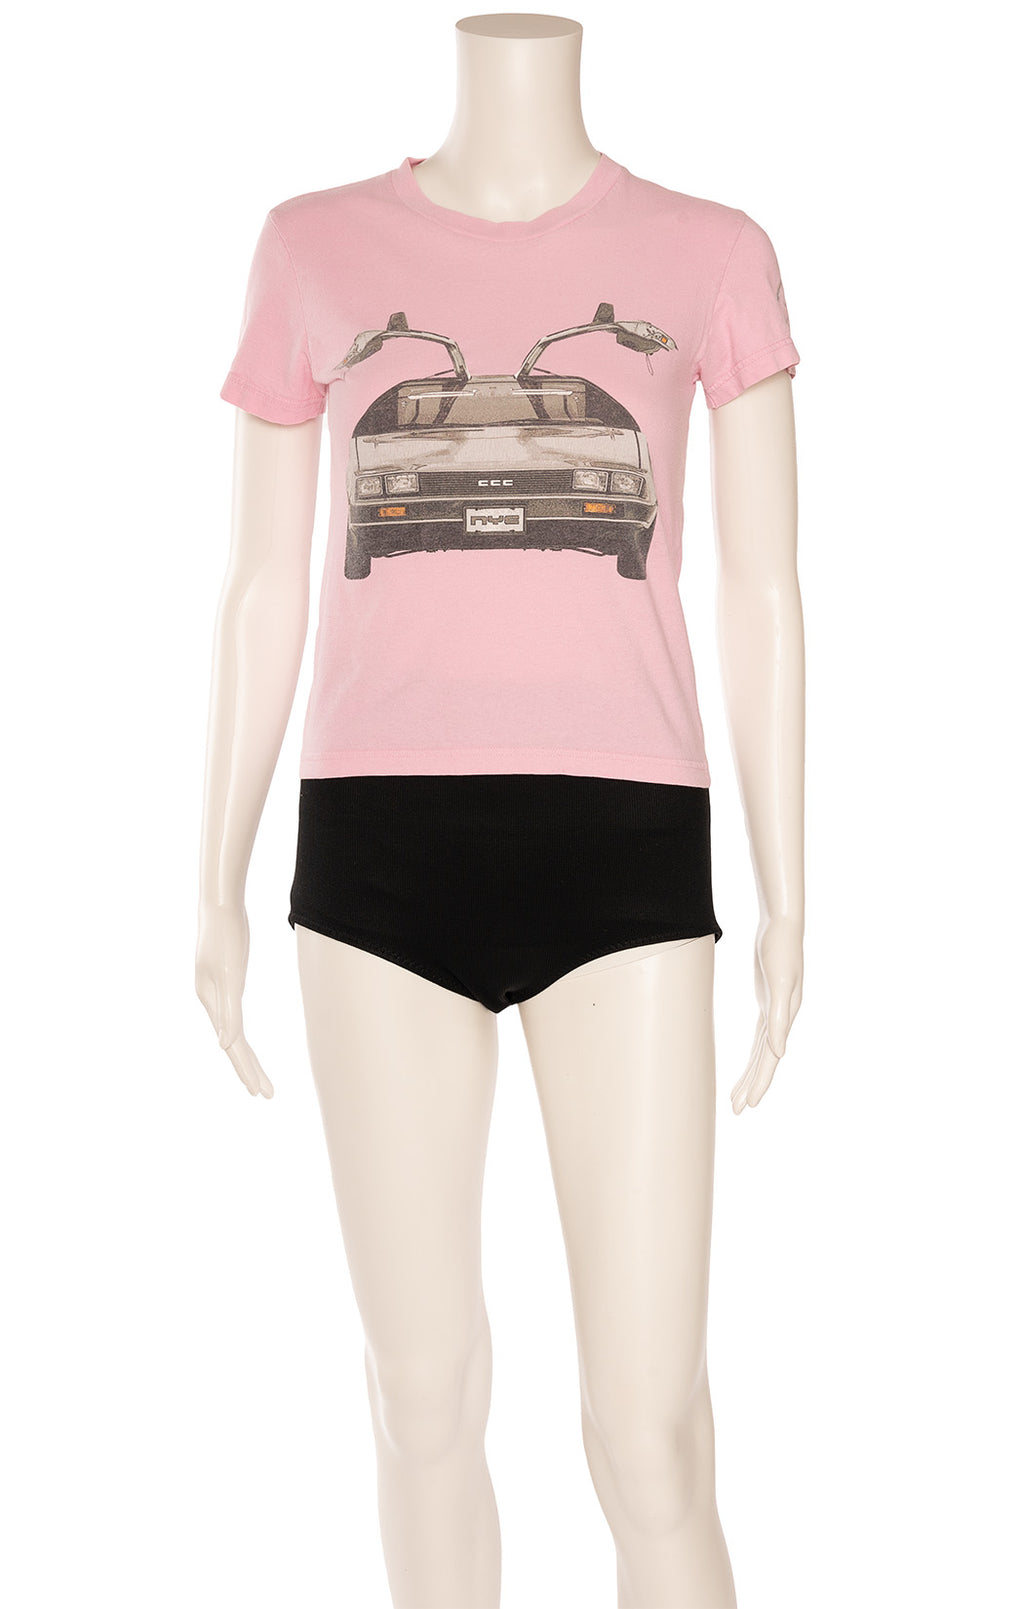 Pink with graphic design shirt sleeve